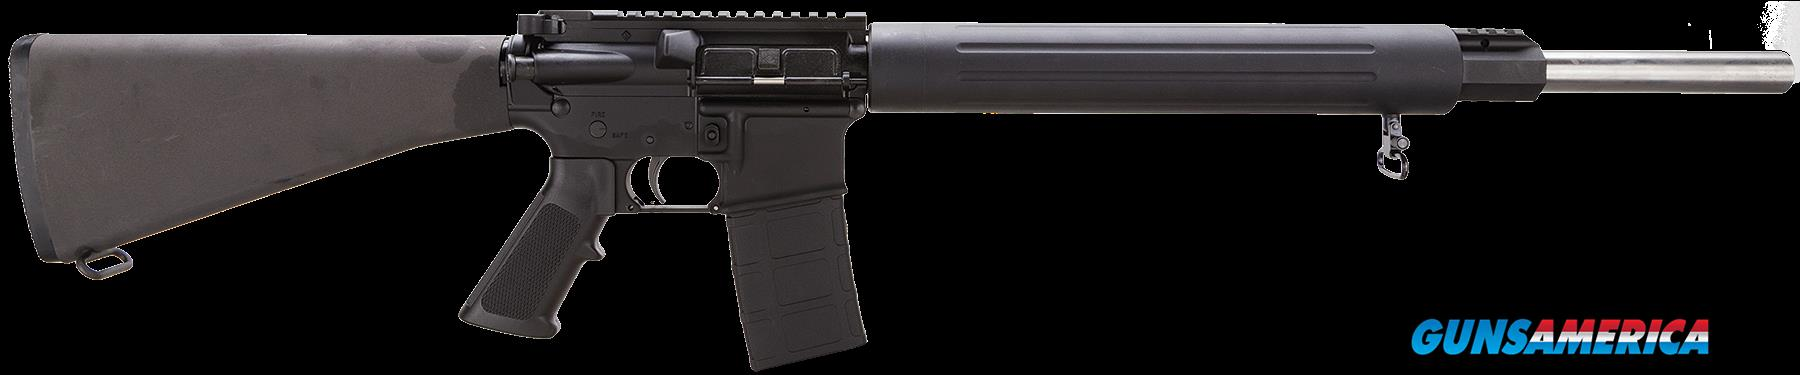 "DPMS 60509 Bull 20 Varmint/Target Semi-Automatic 223 Remington/5.56 NATO 20"" 30+1 A2 Black Stock  Guns > Rifles > DPMS - Panther Arms > Complete Rifle"